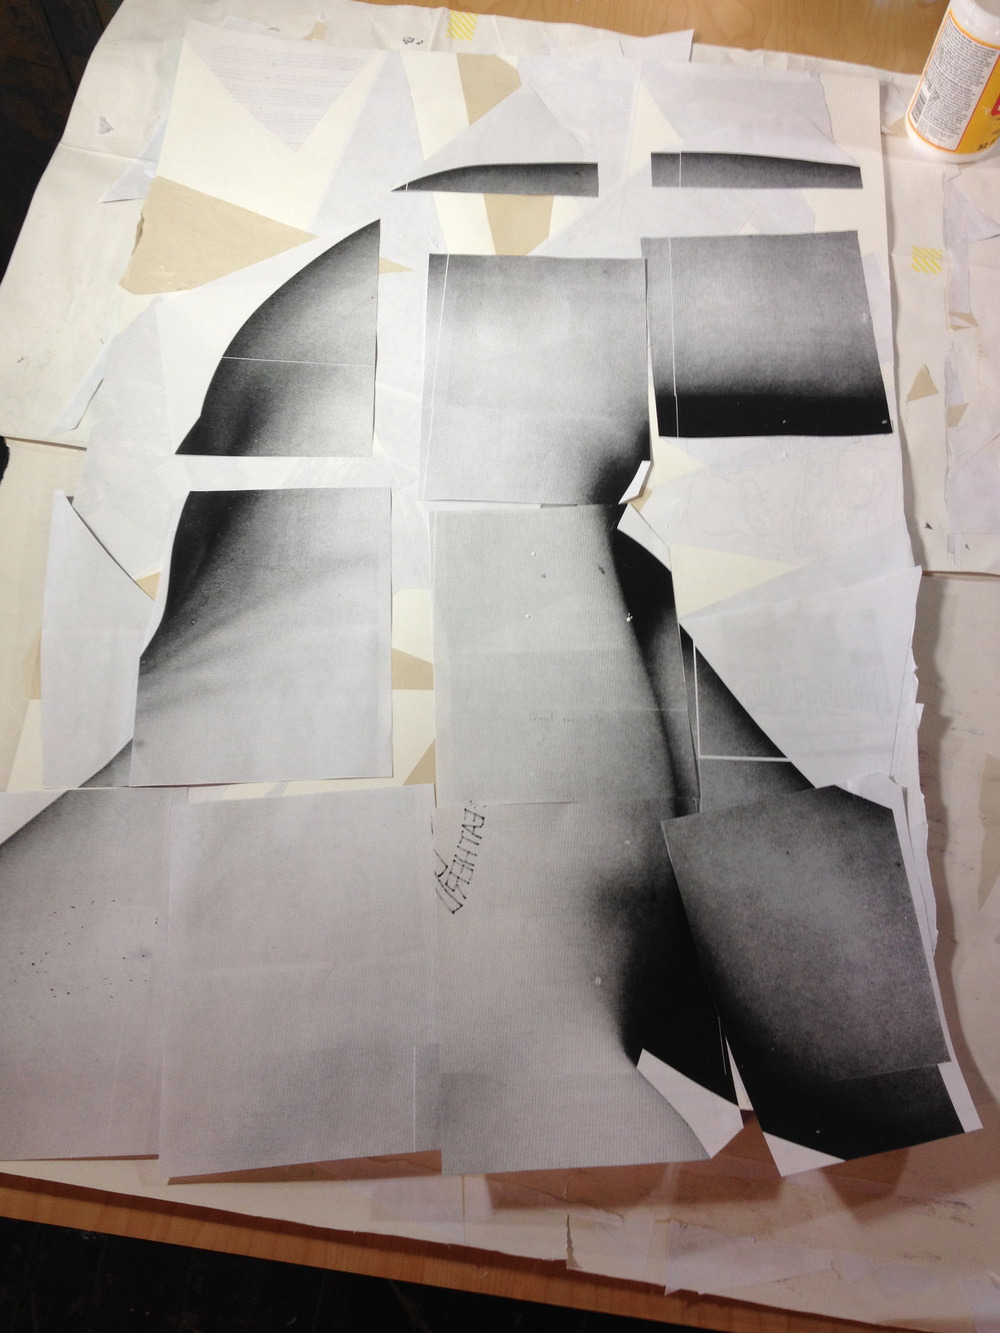 Mark No. 5: Collage in progress